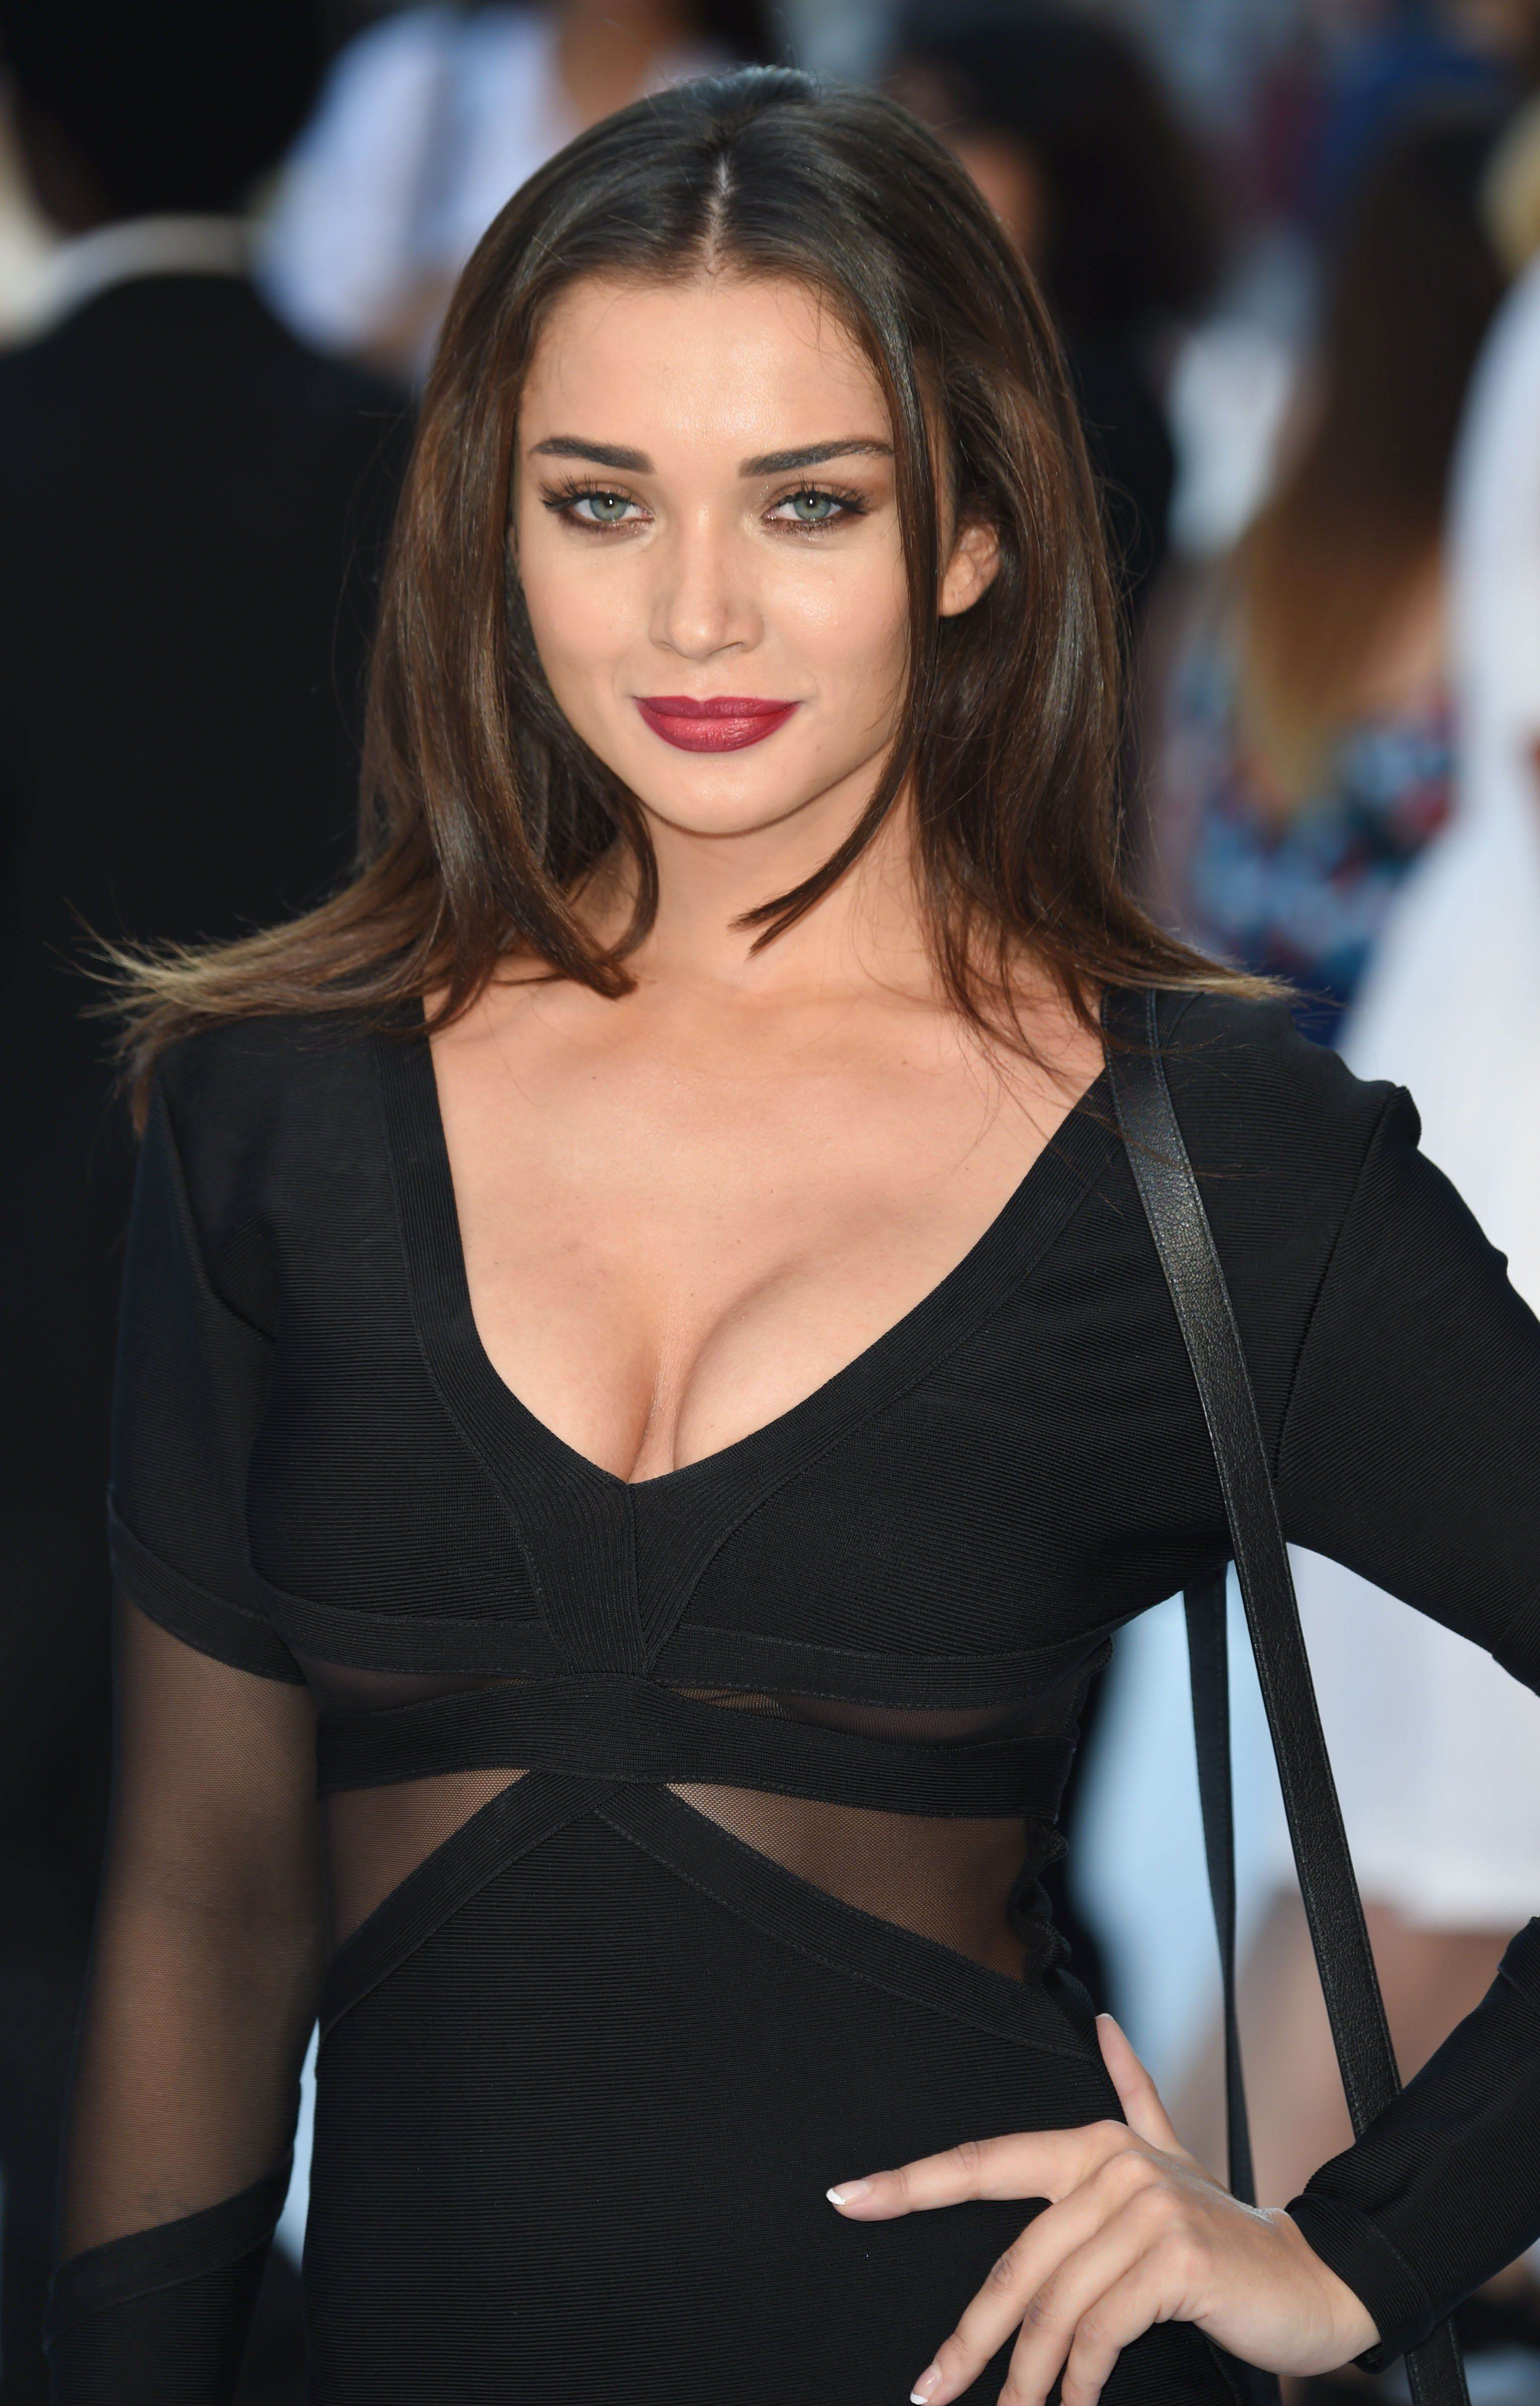 Cleavage Amy Jackson naked (26 foto and video), Pussy, Fappening, Selfie, bra 2020